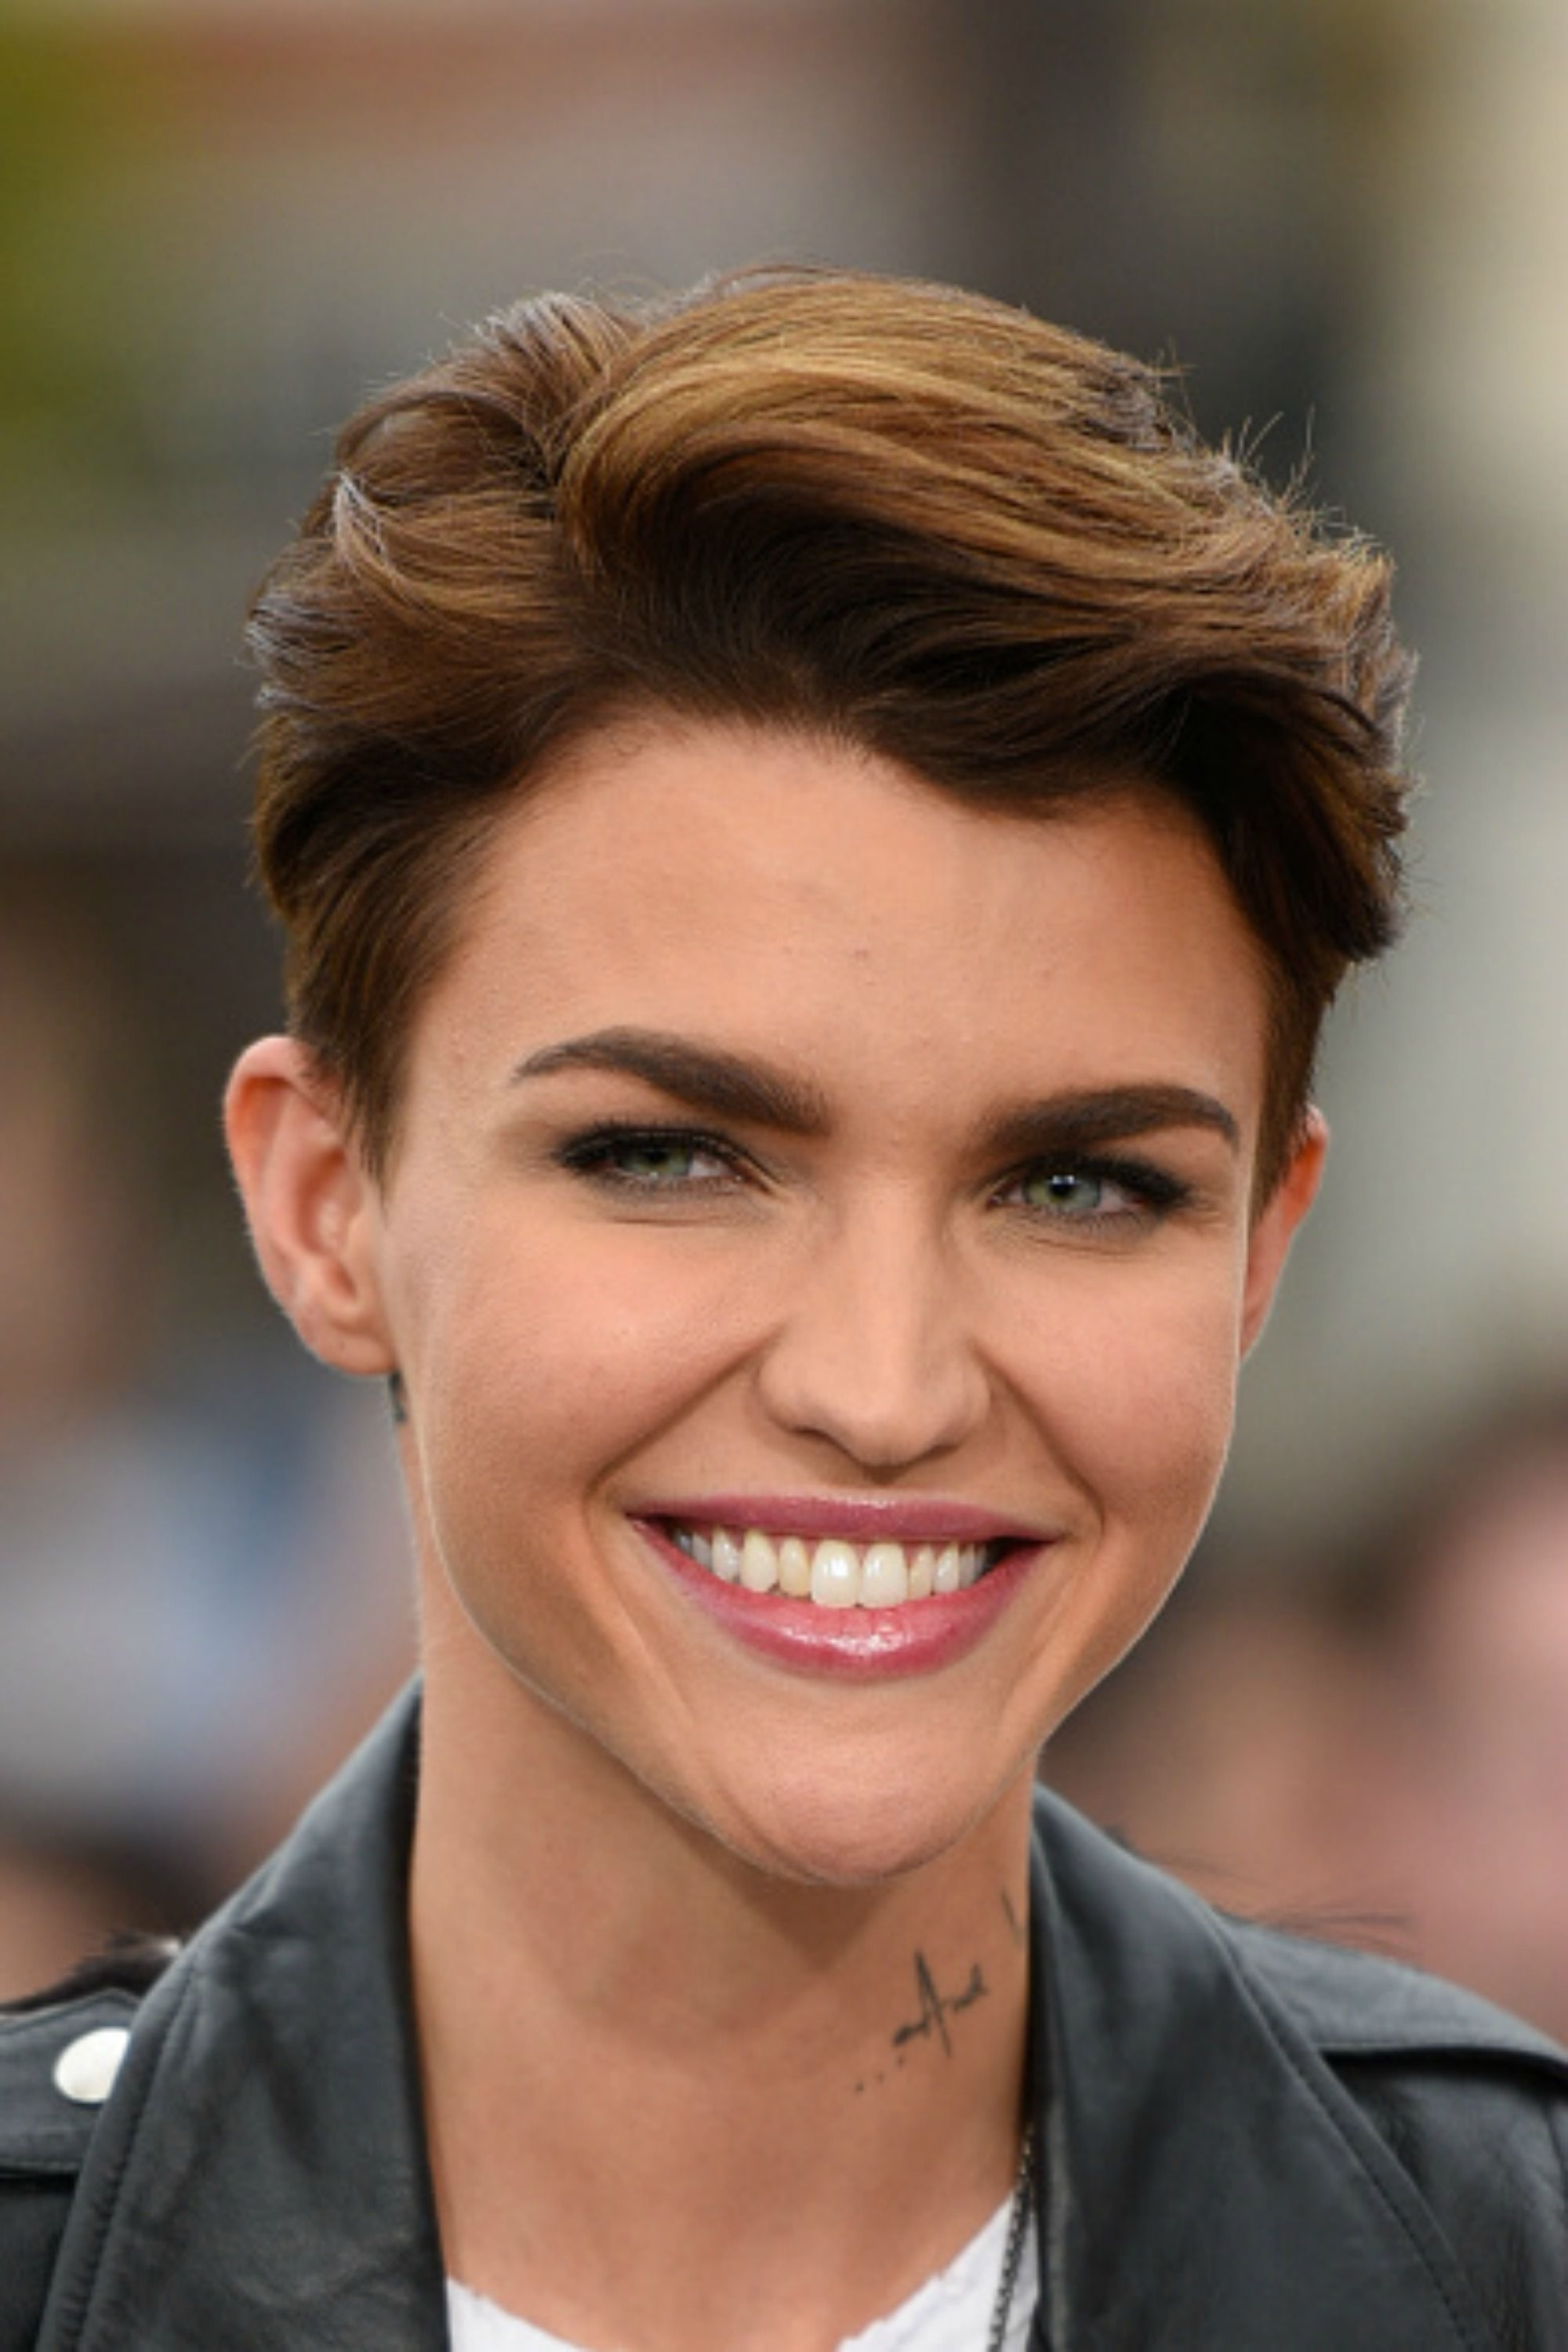 30 Short Hairstyles For Thick Hair 2017 - Women's Haircuts For Short regarding Hairstyle For Thick Poofy Hair